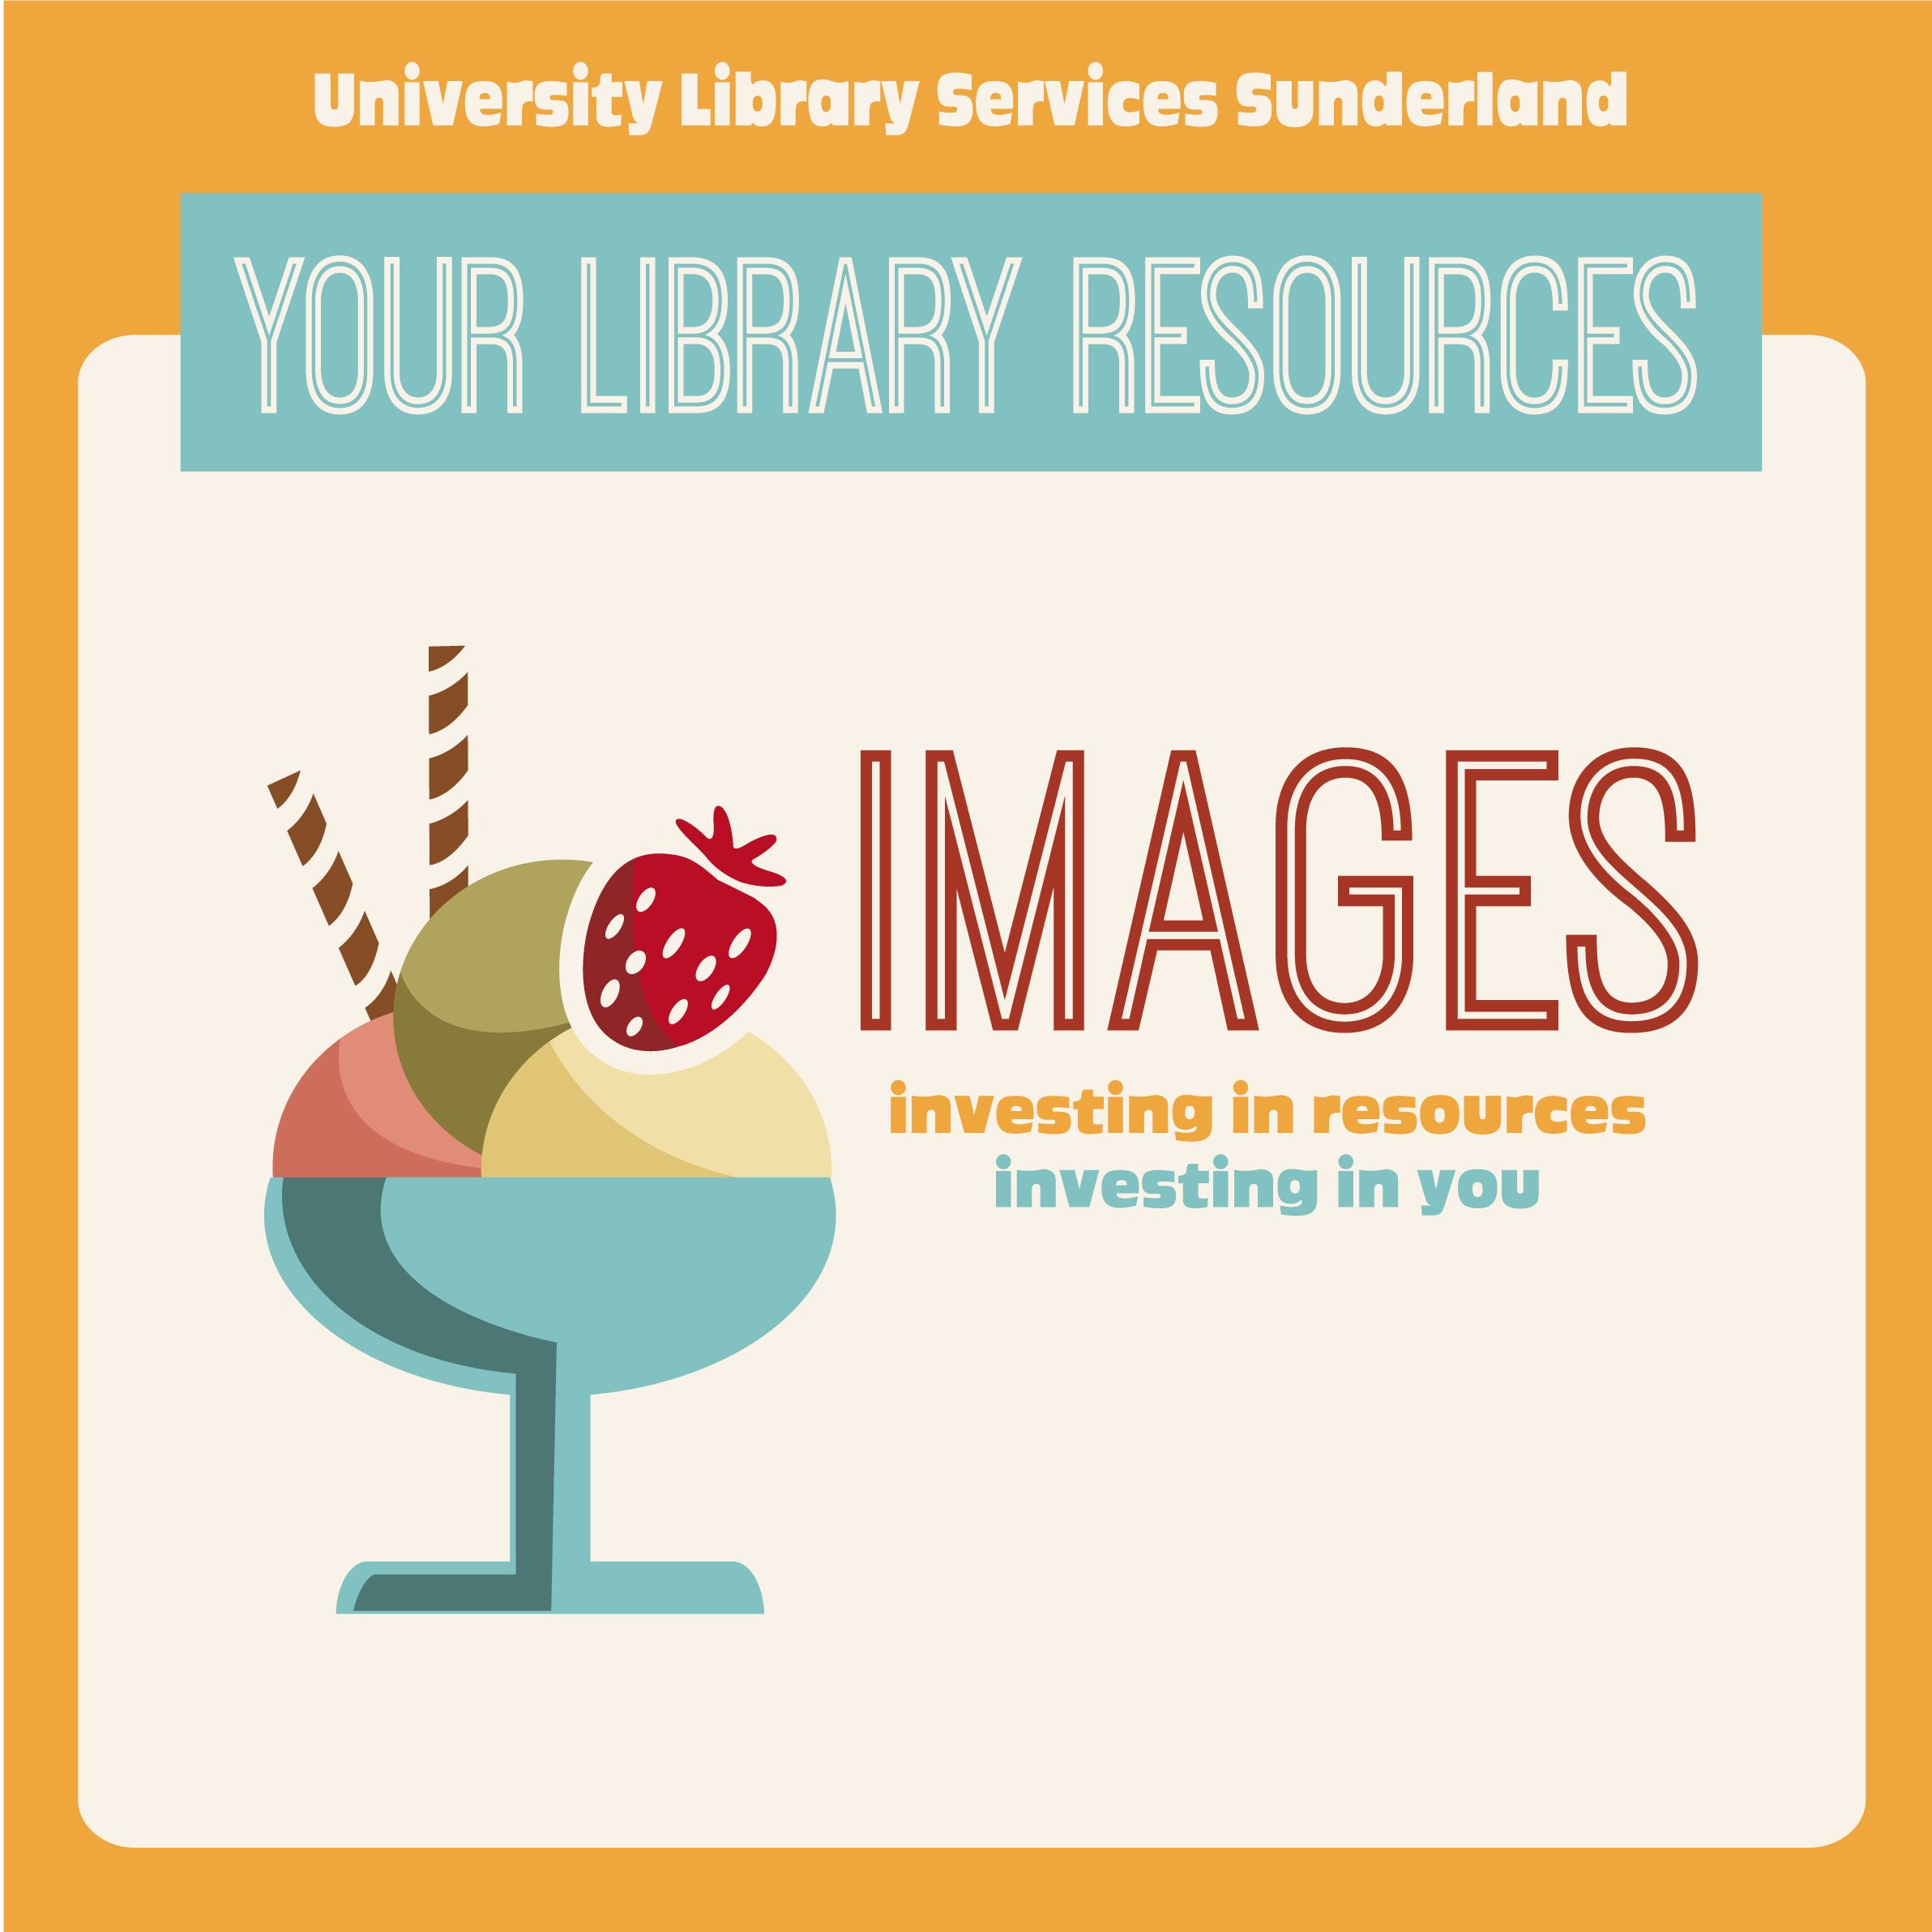 This is a web icon to promote our image stock. We've left some blank space on these icons to enable our staff to contextualise these images for their own customer audiences.